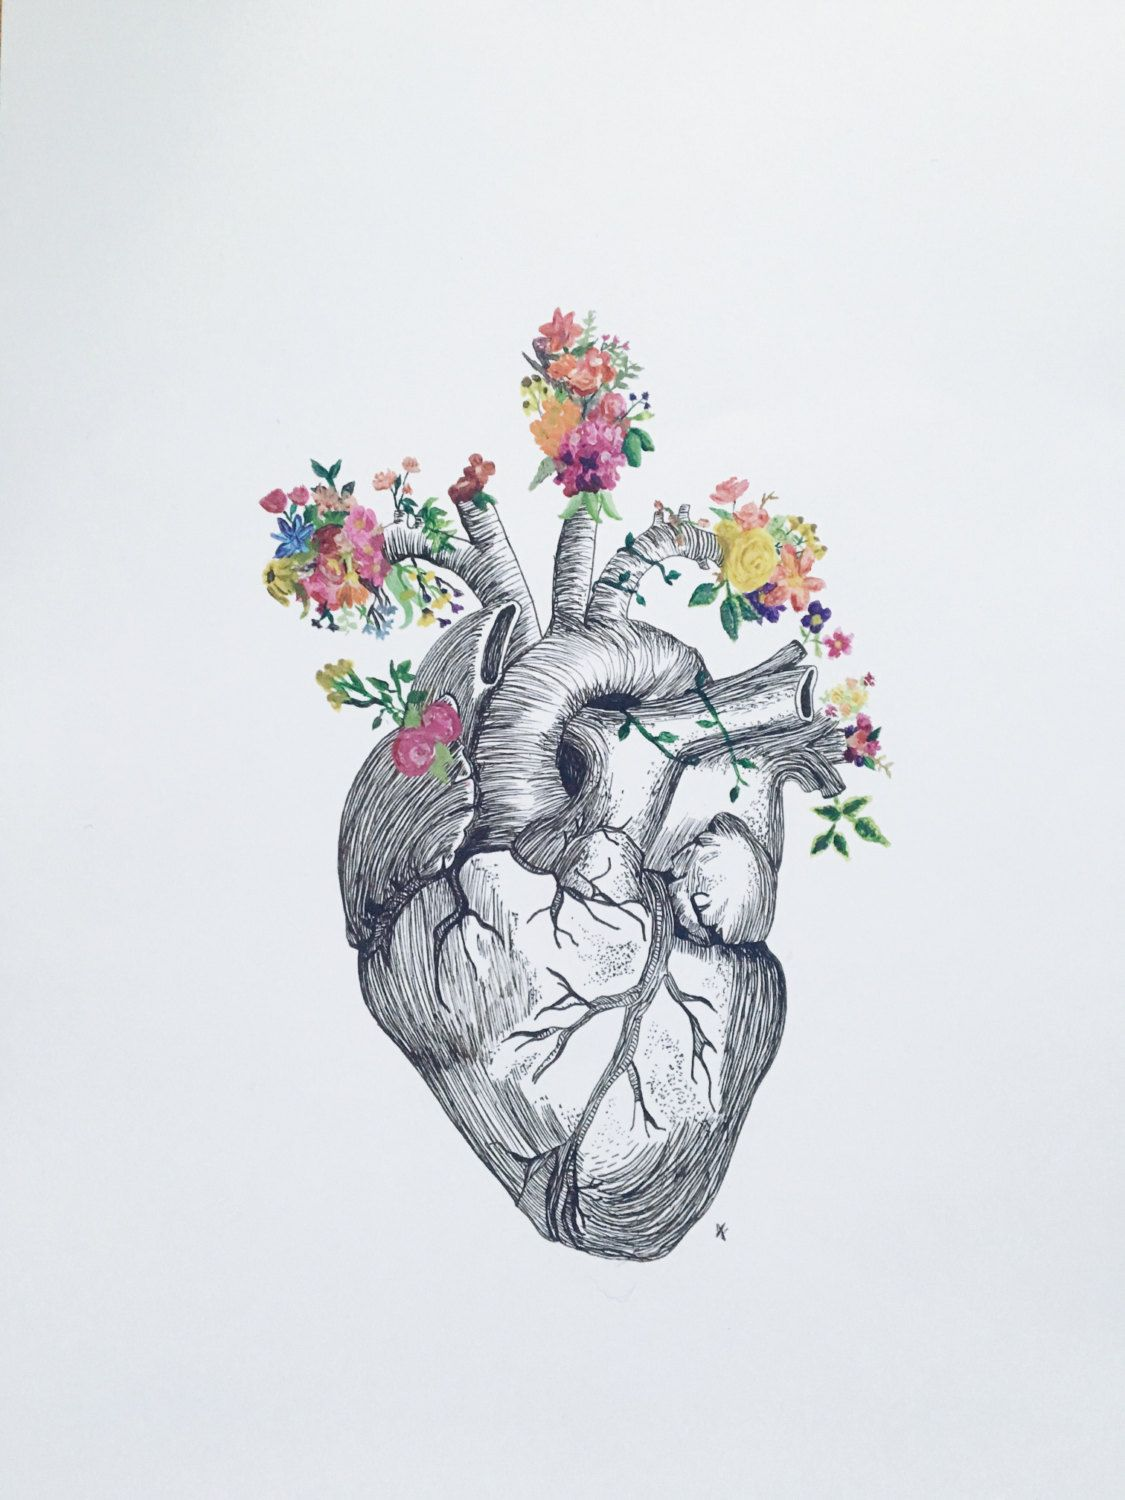 anatomical heart + flowers